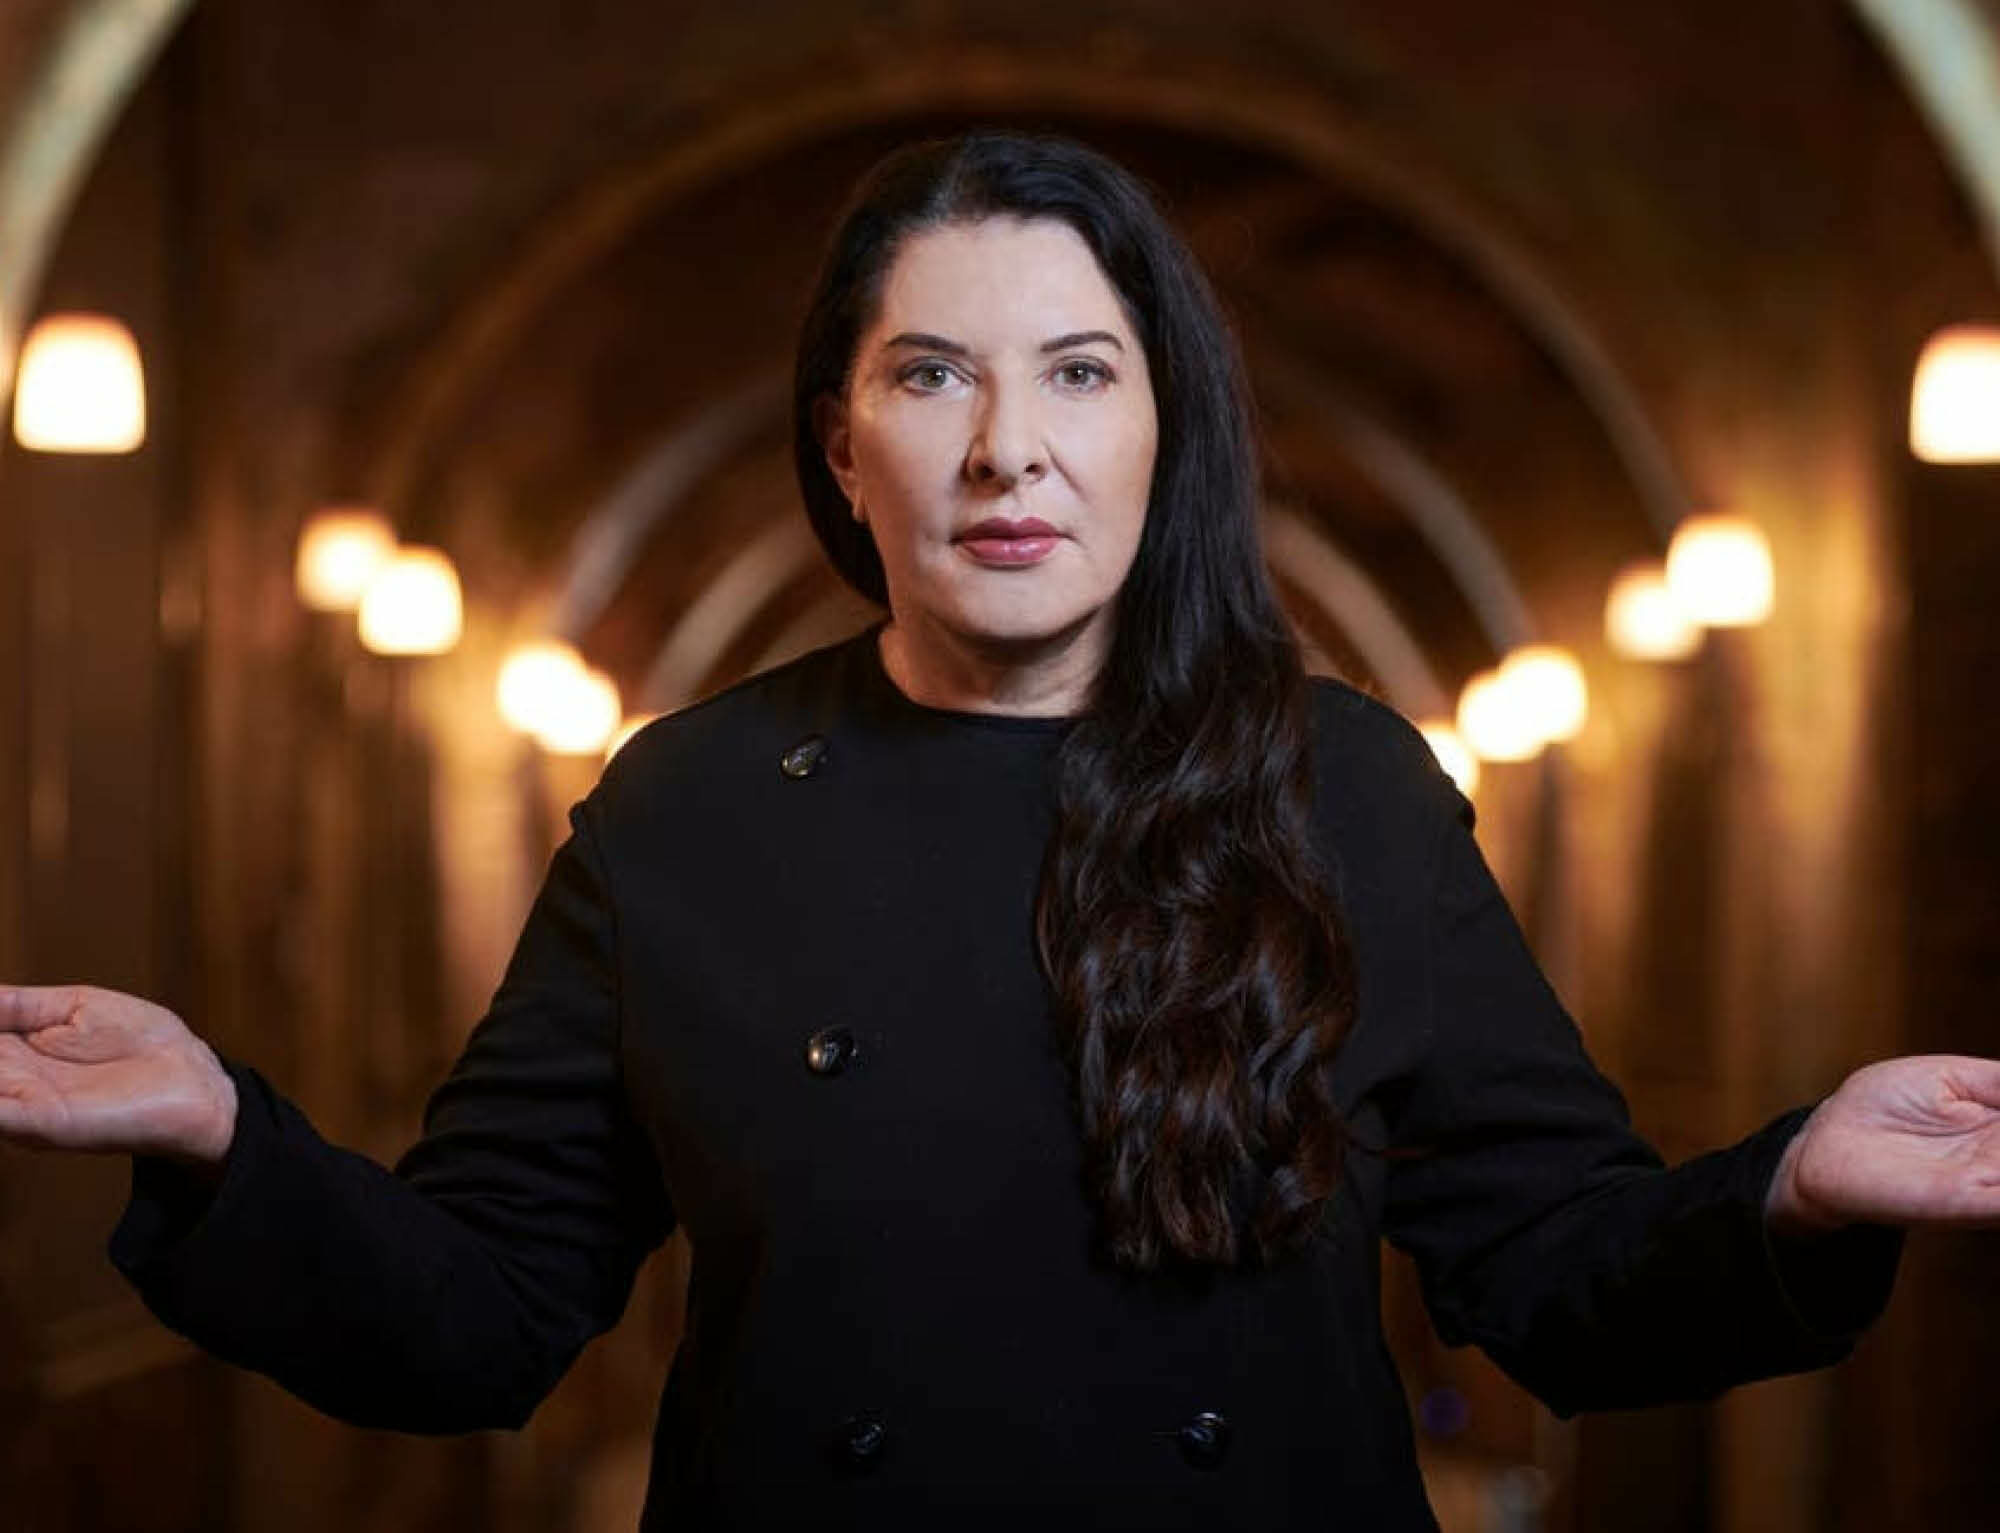 Marina Abramović takes over Sky Arts channel